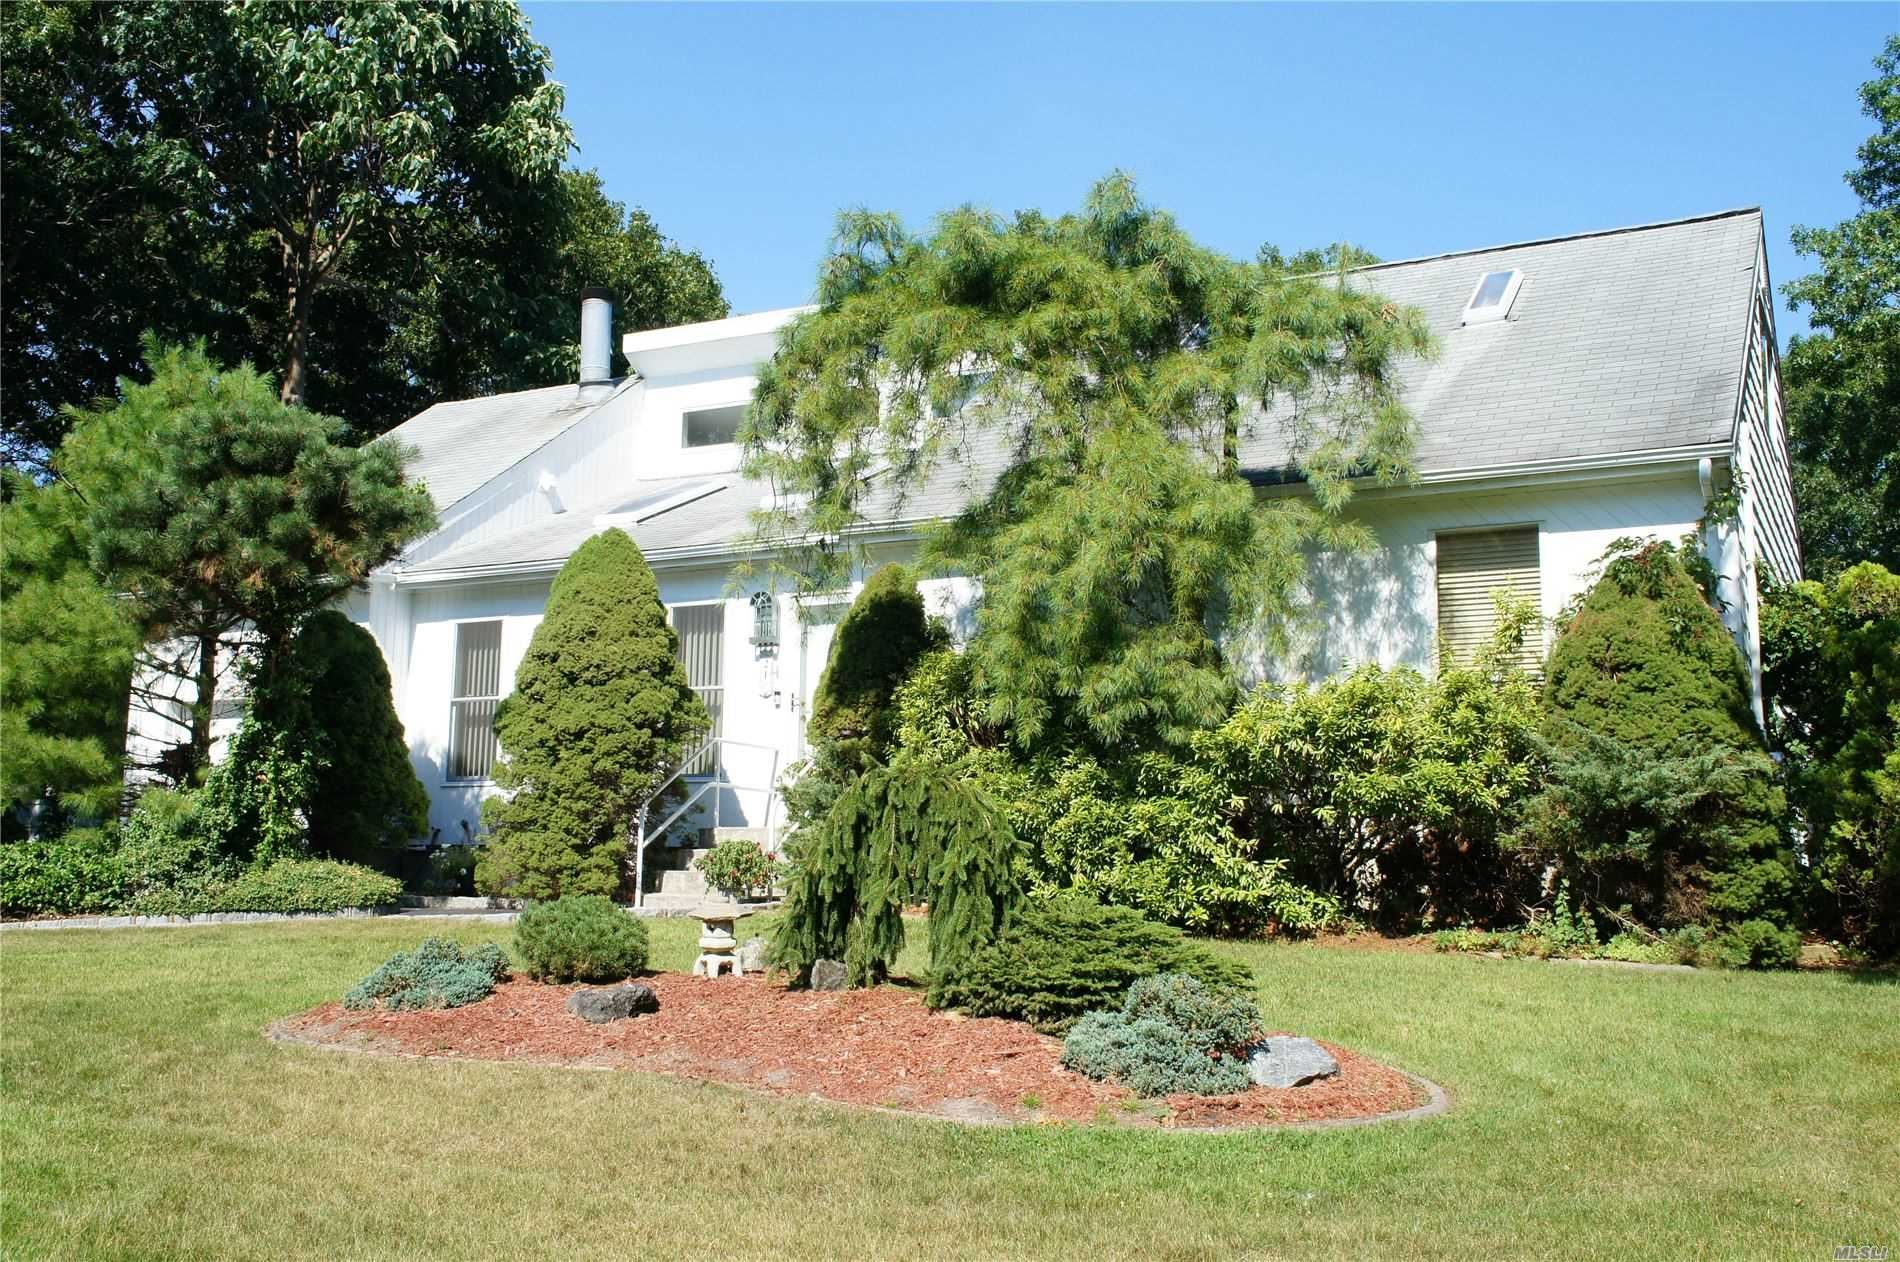 21 Williams St, Center Moriches, NY 11934 - MLS#: 3234426